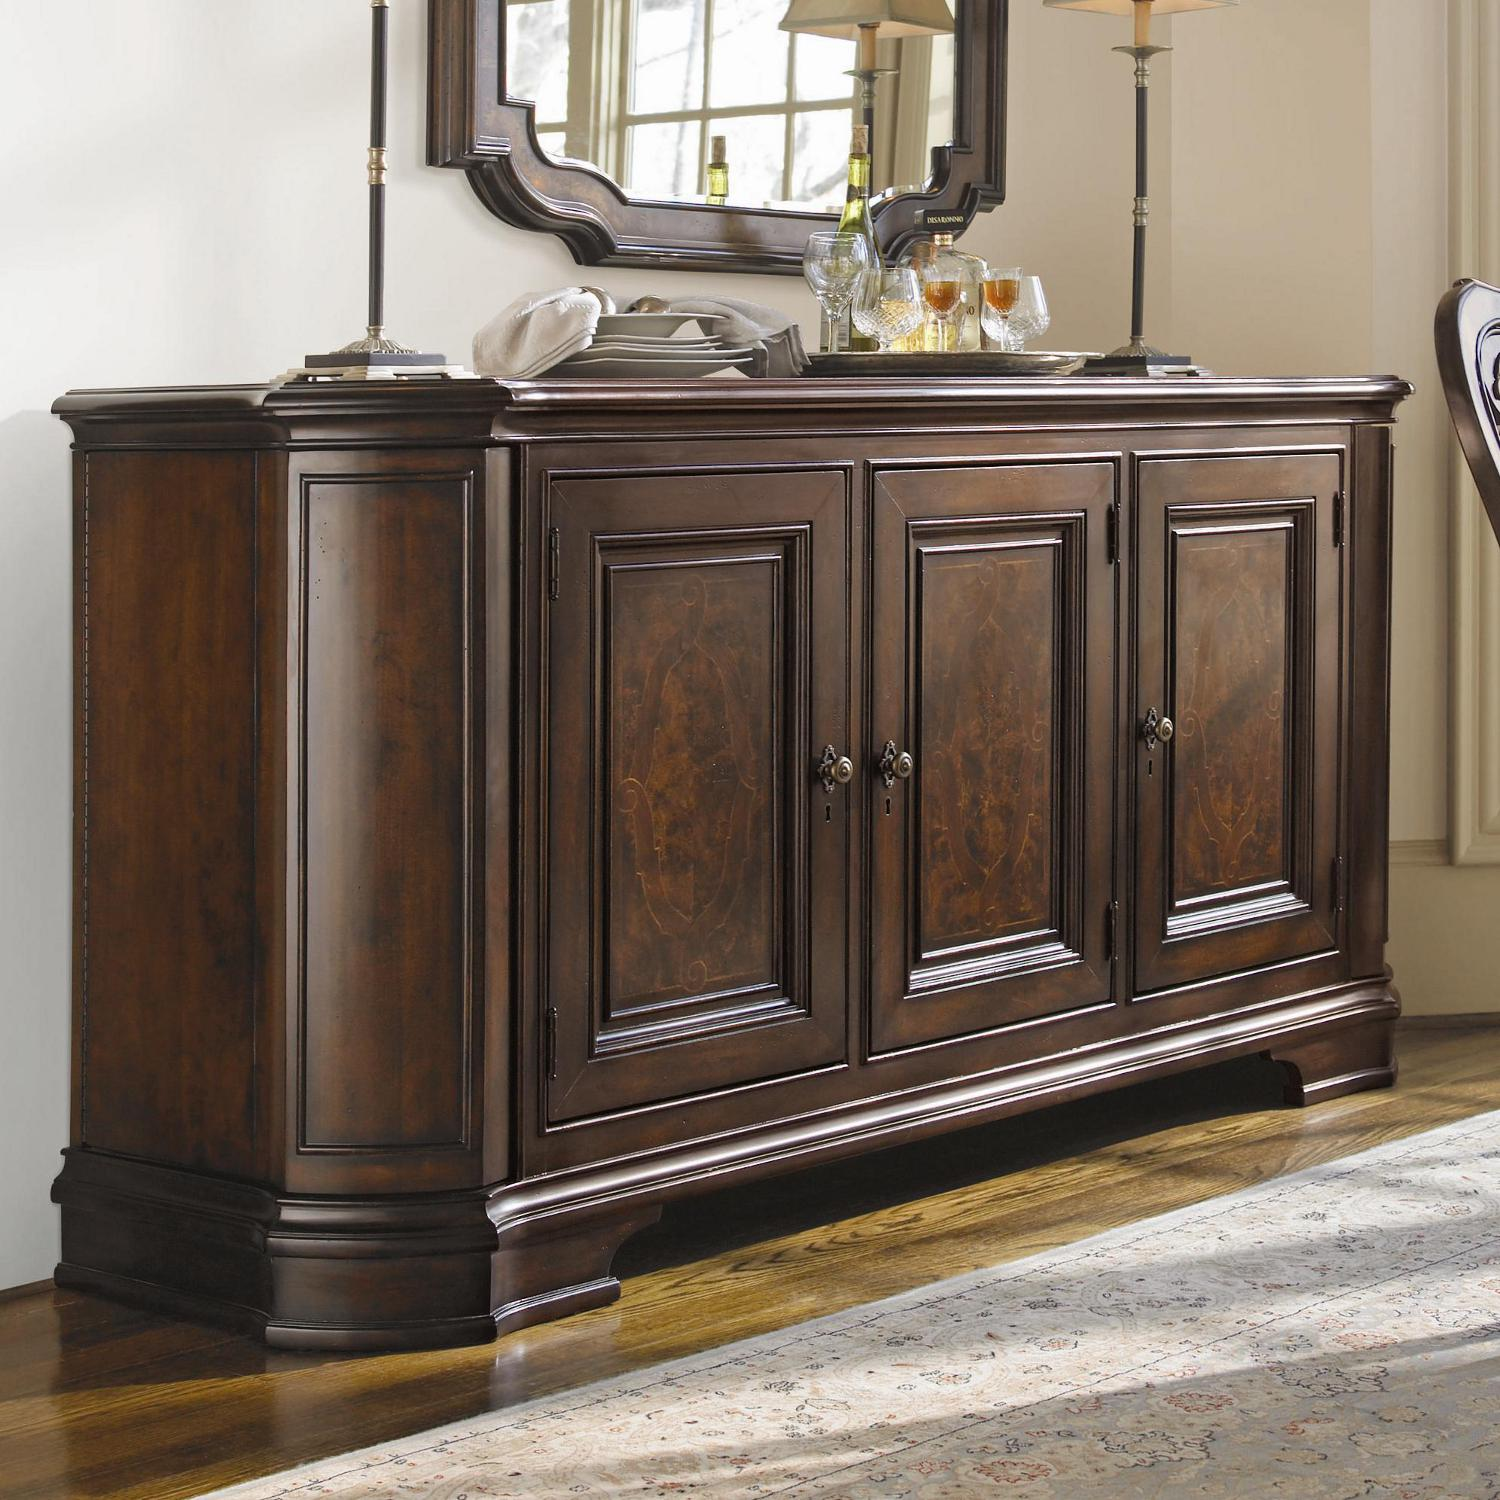 Attractive sideboards and buffets for home furniture with antique sideboards and buffets